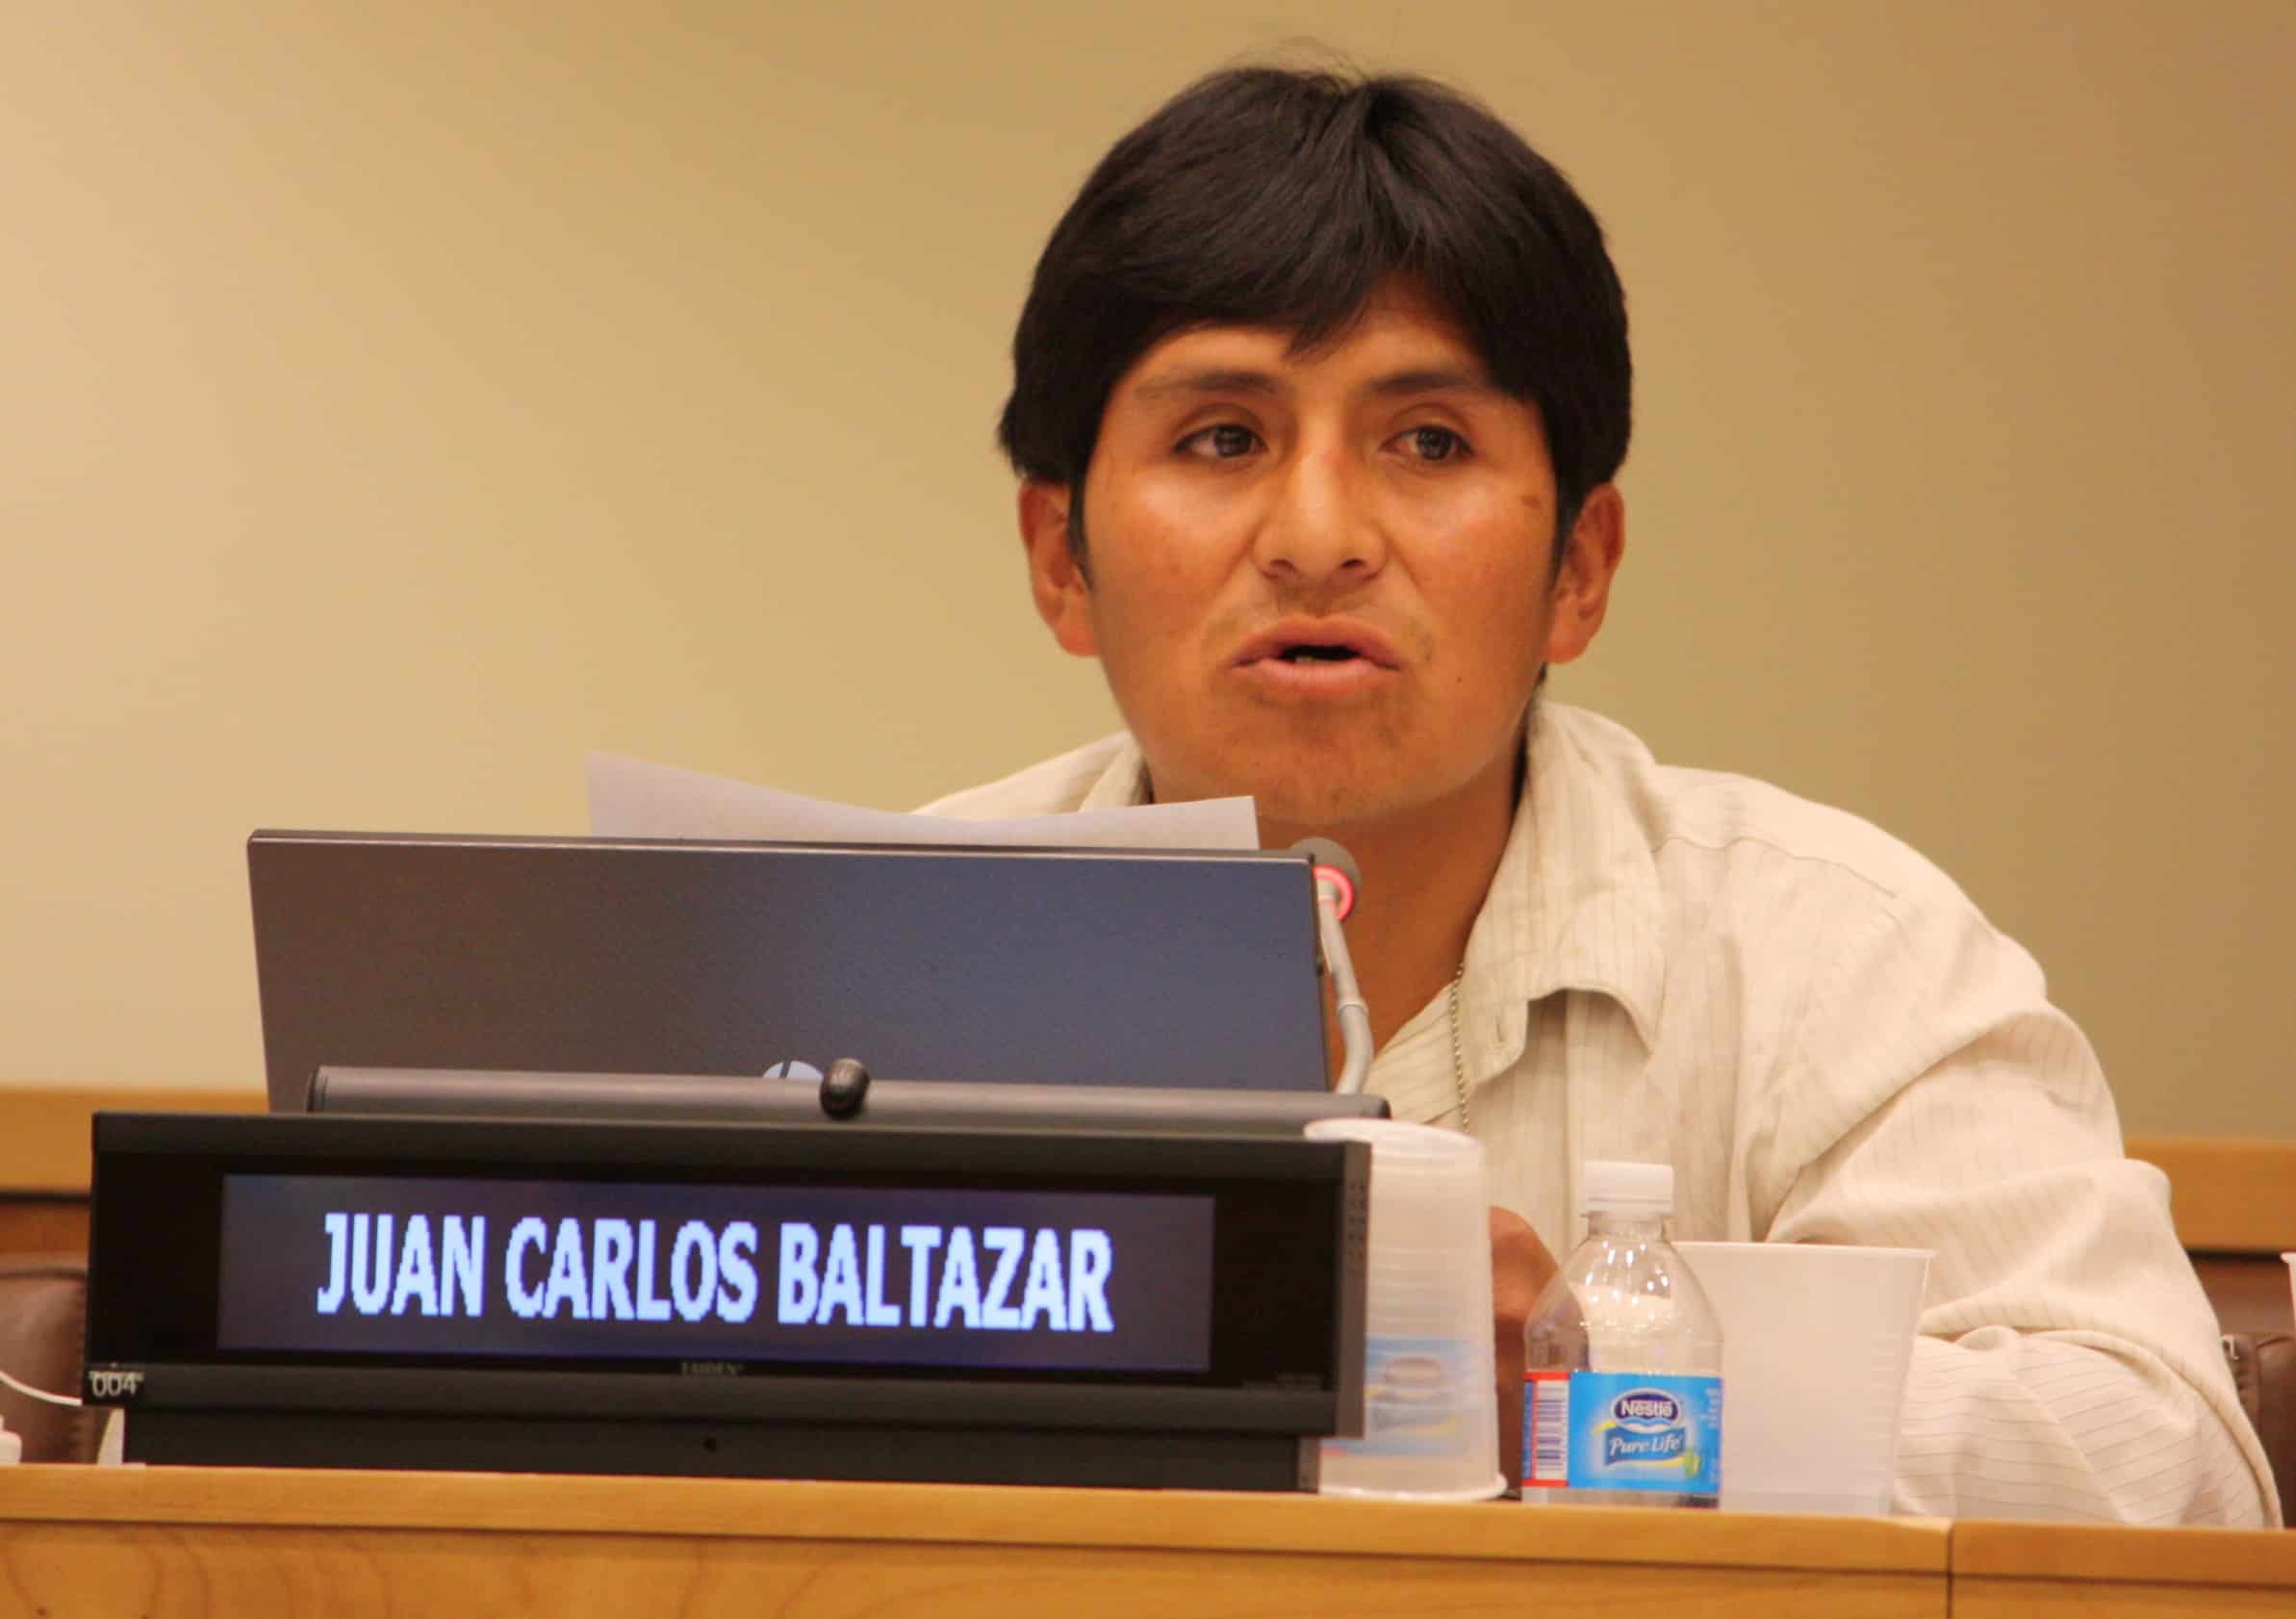 Seminar participant speaks at the UN.